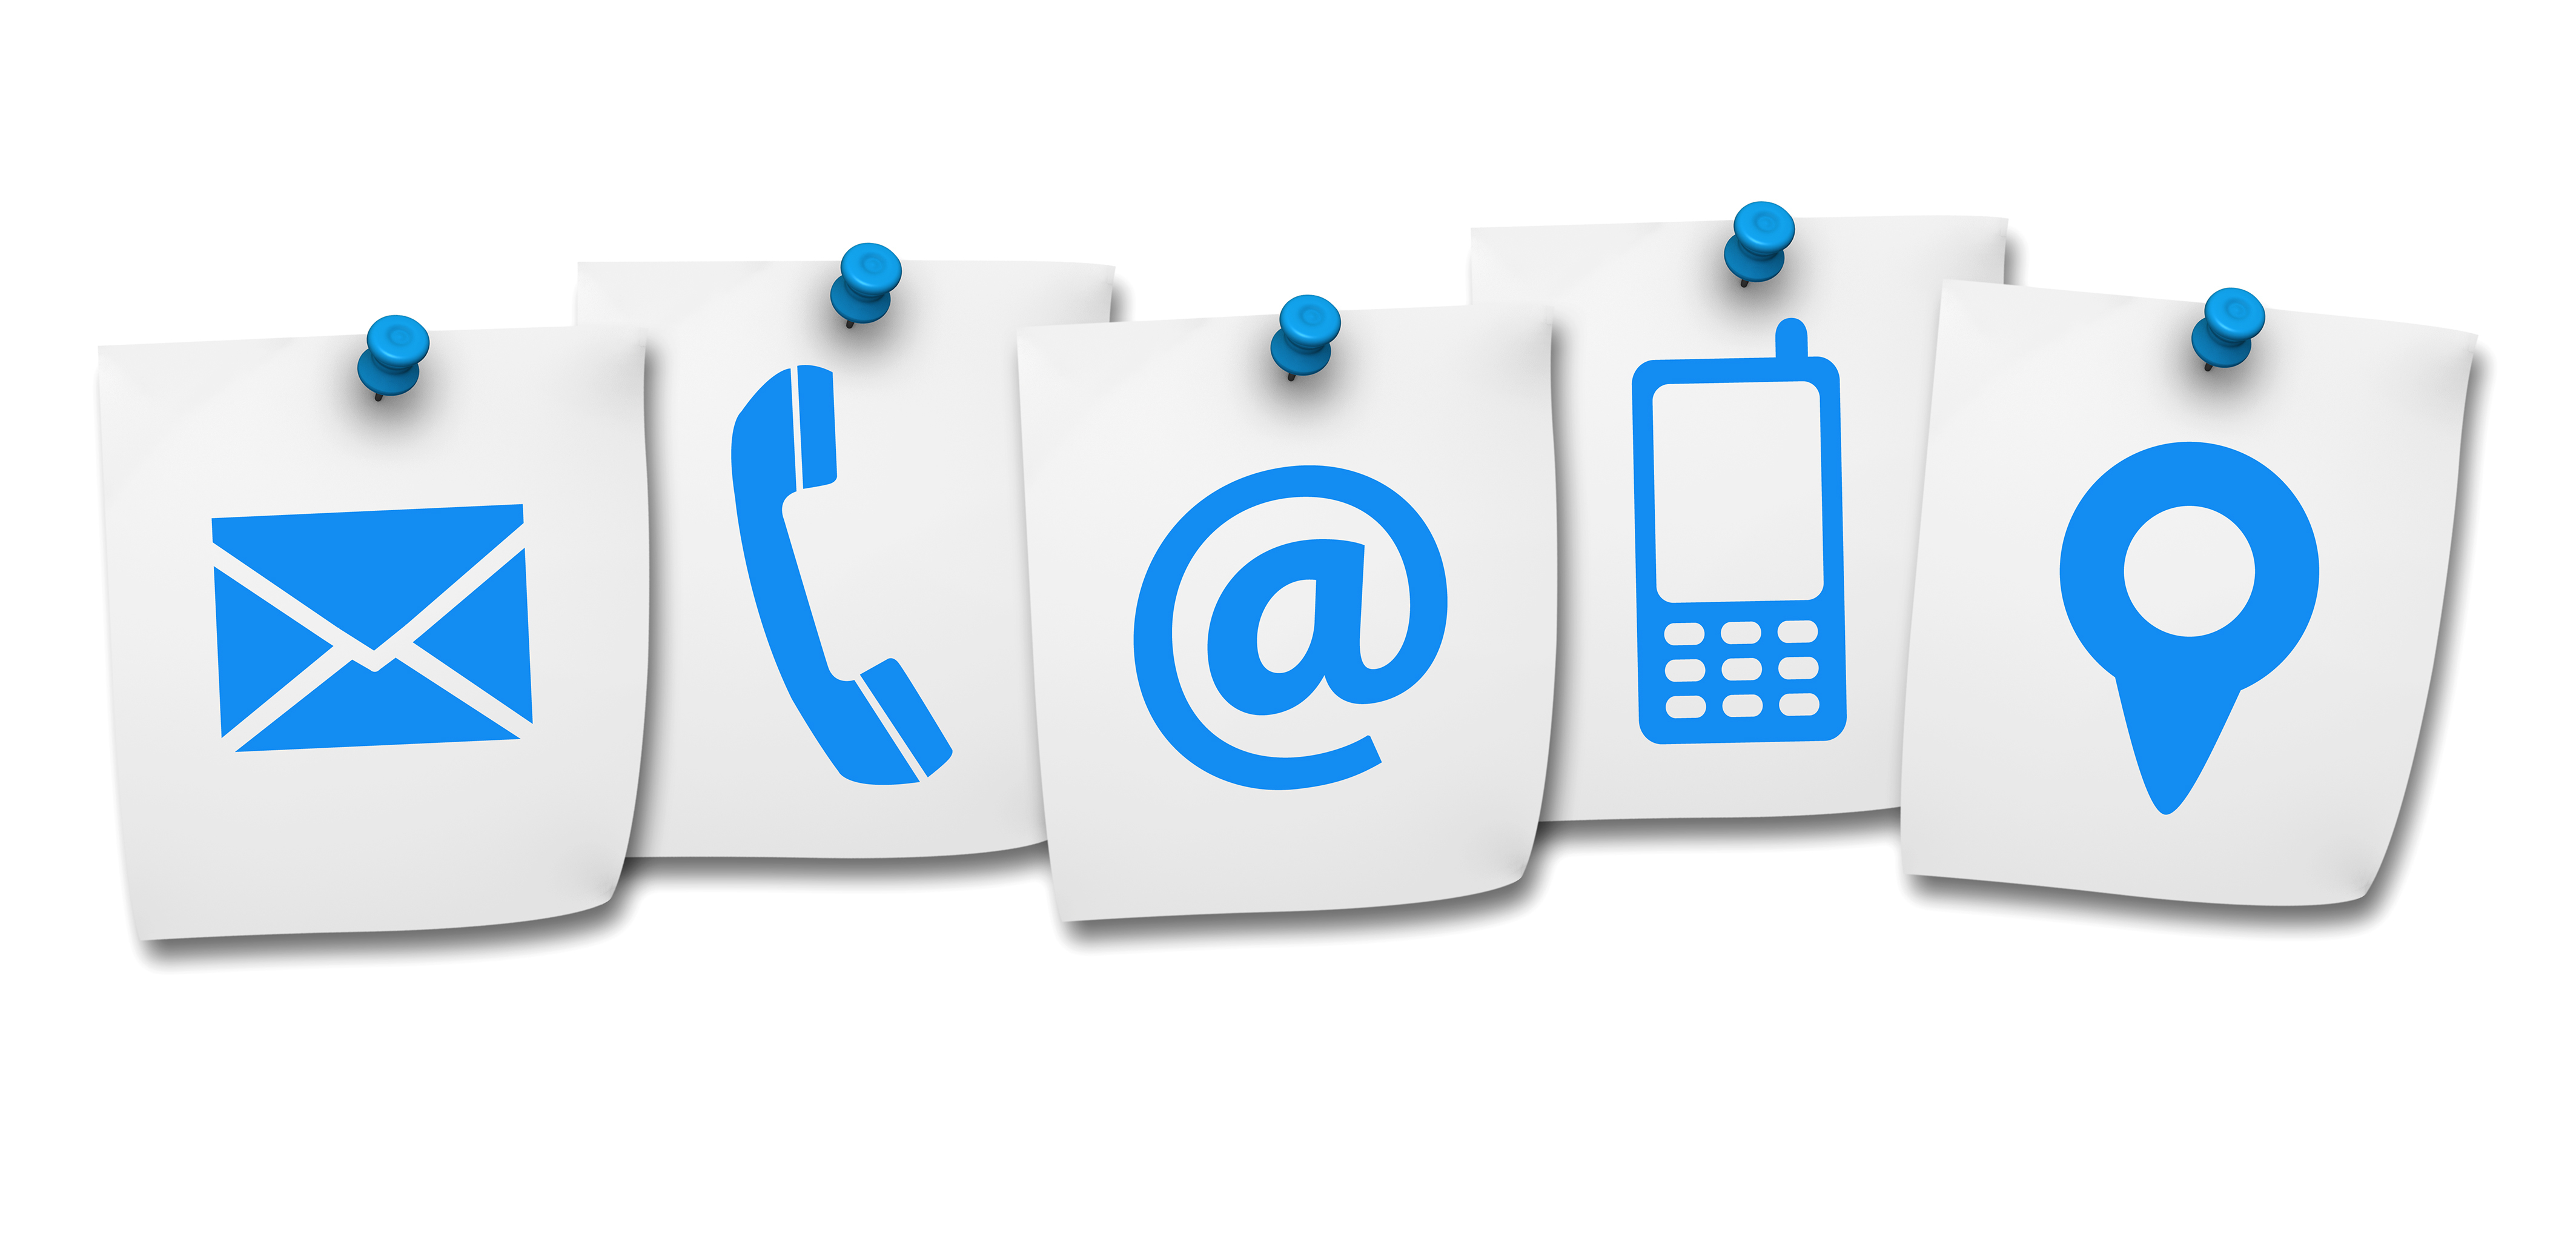 9 Contact Information Icon Images